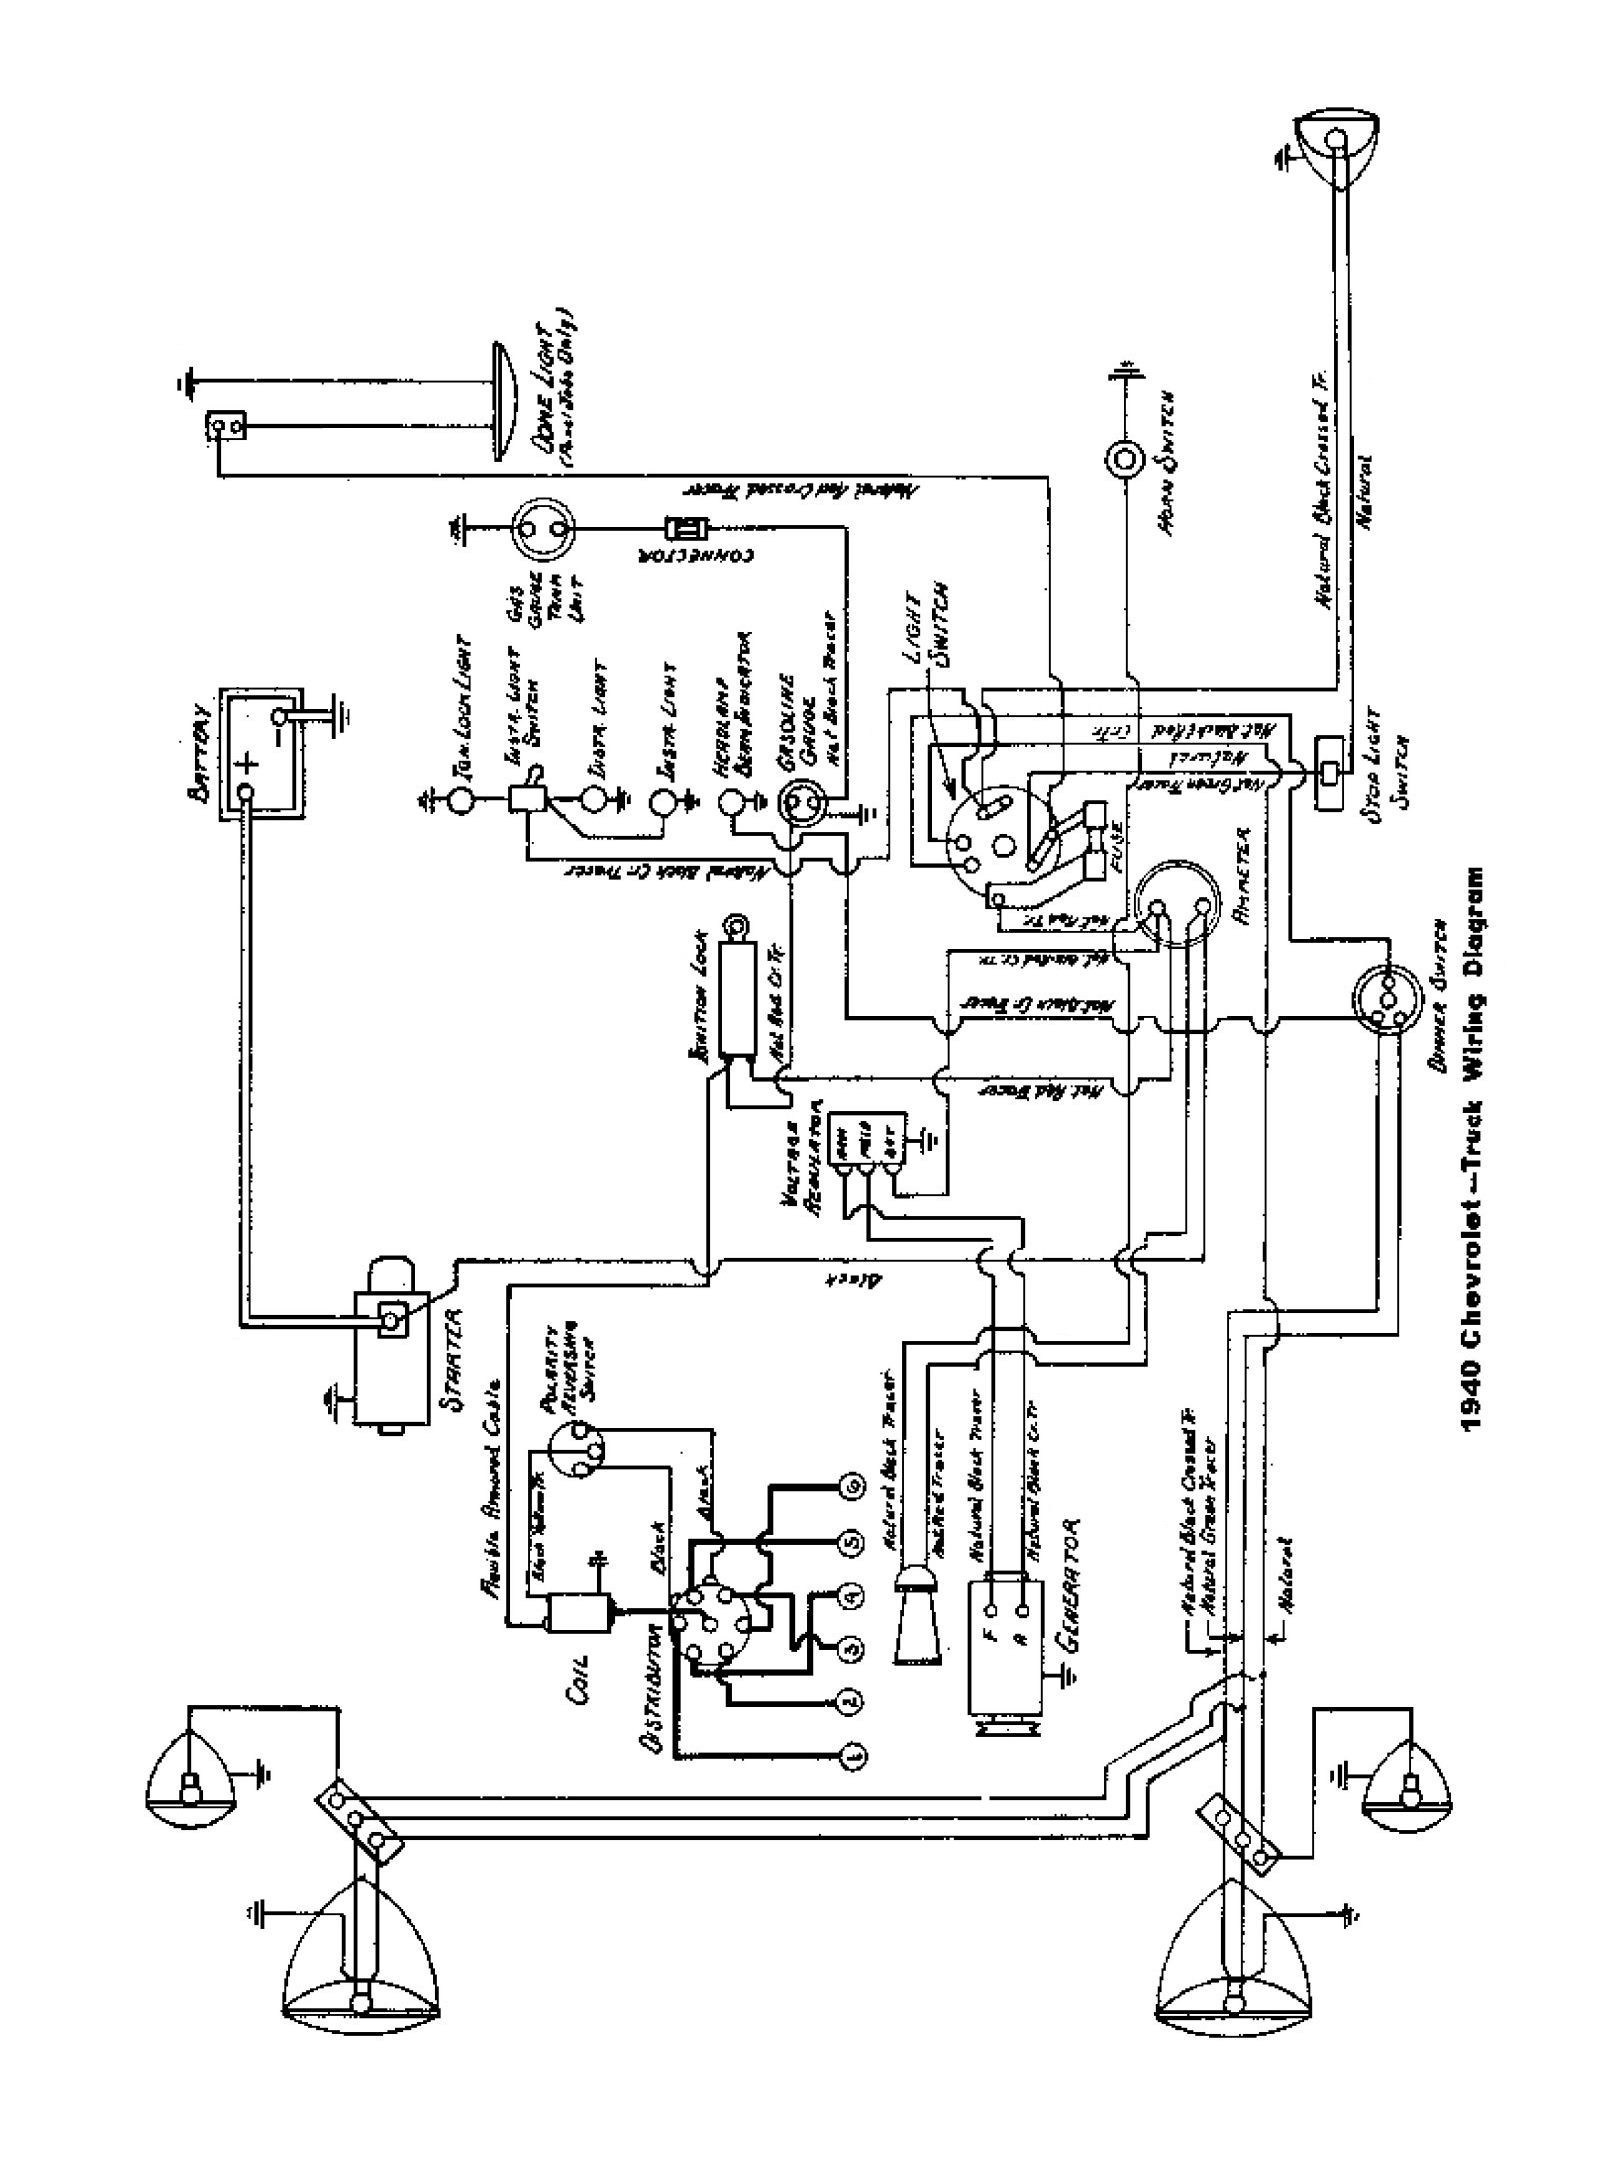 Chevrolet Truck Wiring Diagrams Truck Wiring Schematics Wiring Diagram Paper Of Chevrolet Truck Wiring Diagrams